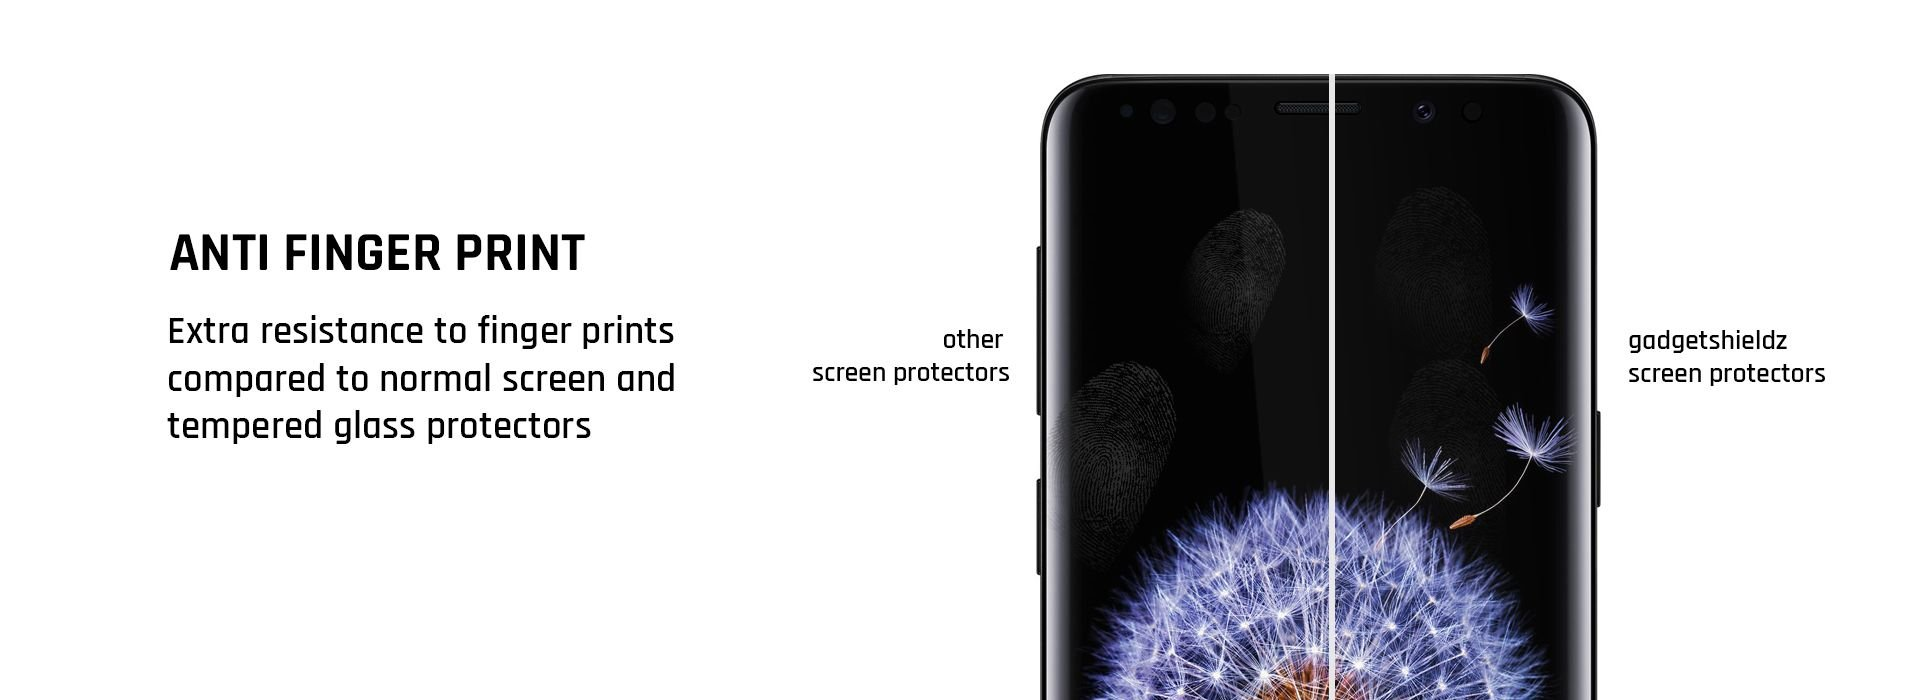 Anti-fingerprint